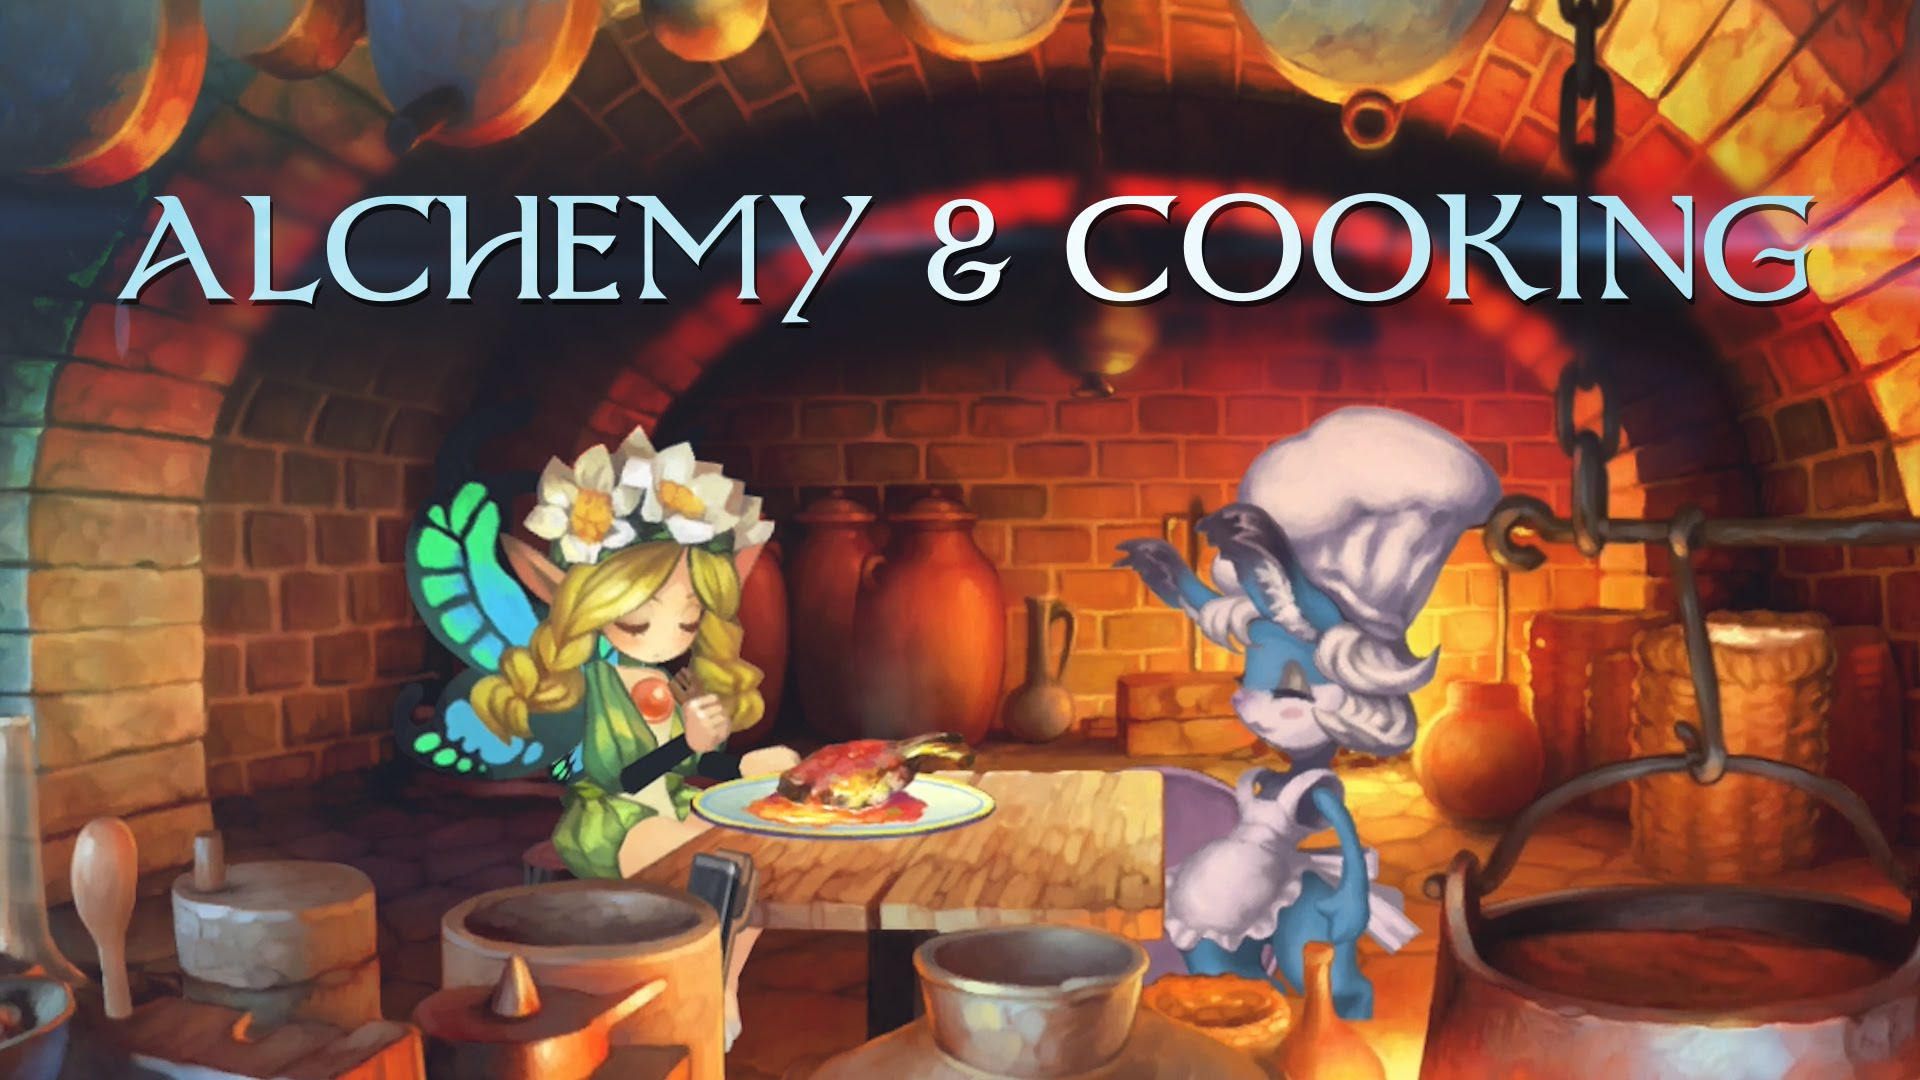 Alchemy and Cooking in Odin Sphere Leifthrasir